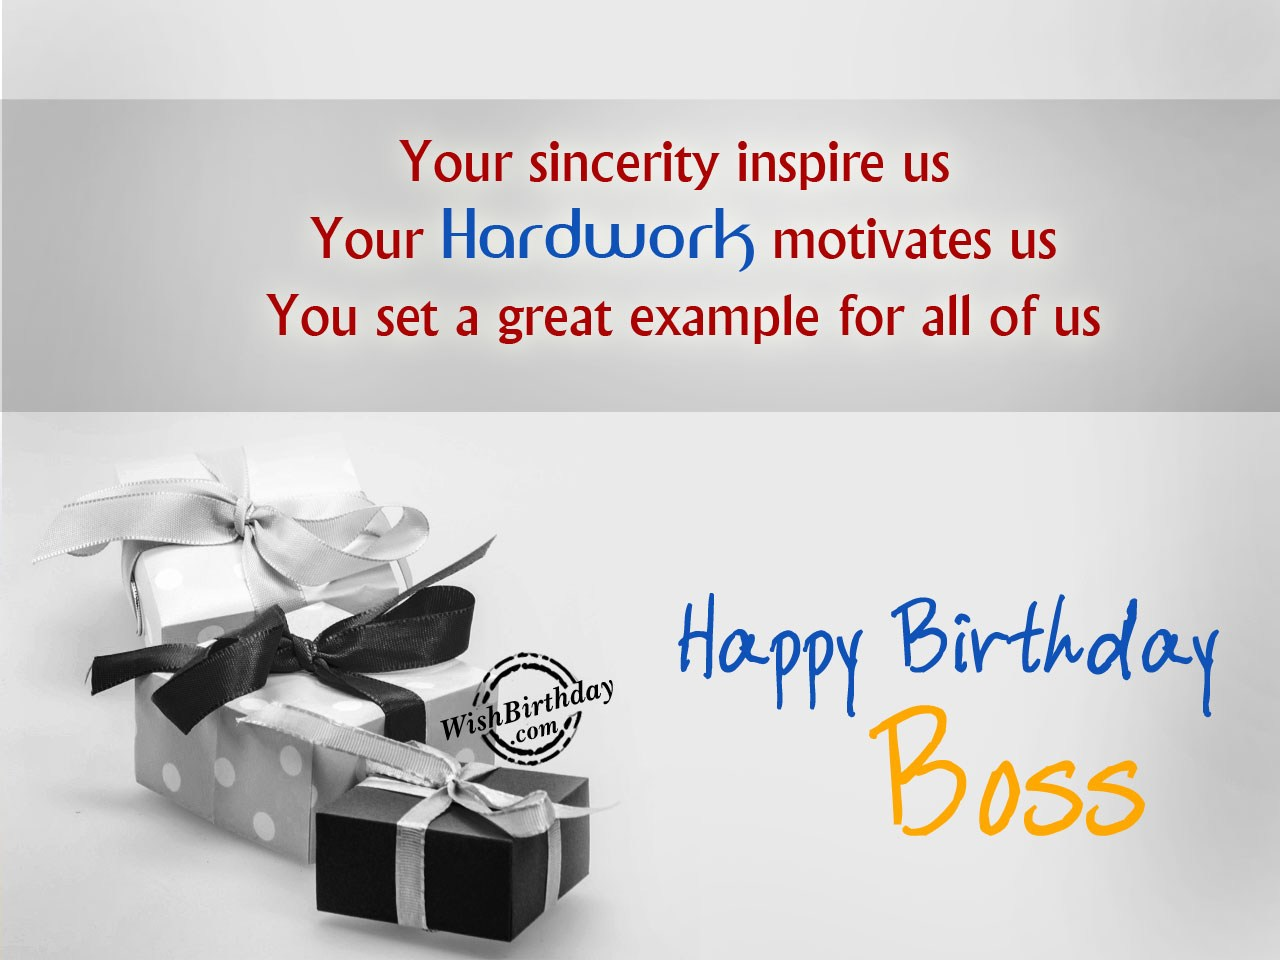 Birthday wishes for boss birthday images pictures your sincerity inspire us m4hsunfo